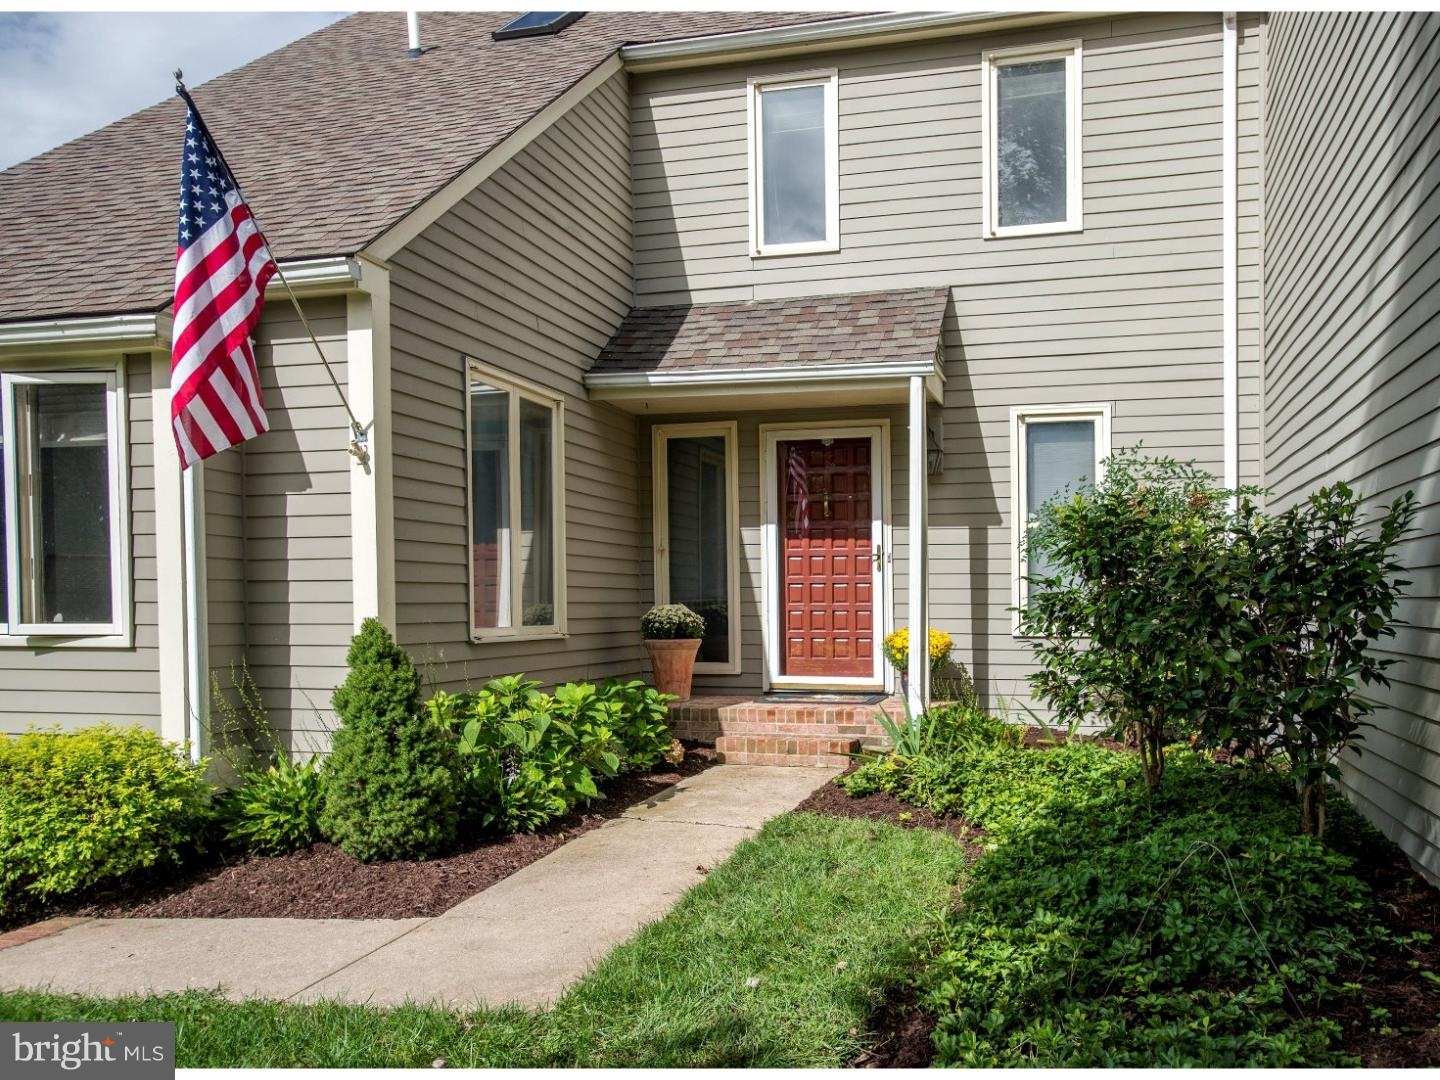 1150 Mews Lane West Chester, PA 19382